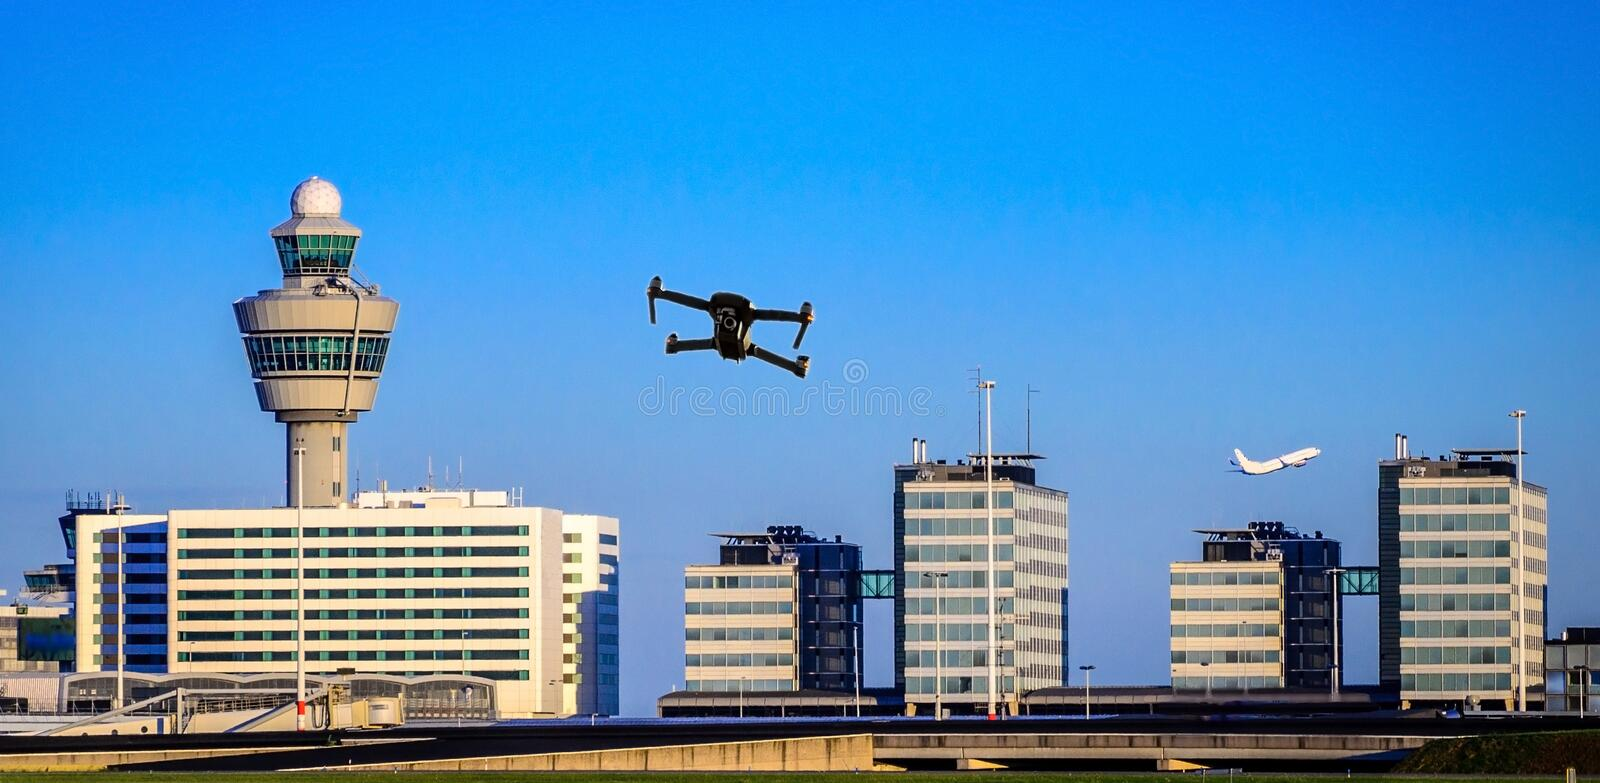 Unmanned drone flying near airport with air traffic control tower, flight disruption concept - digital composite royalty free stock photography